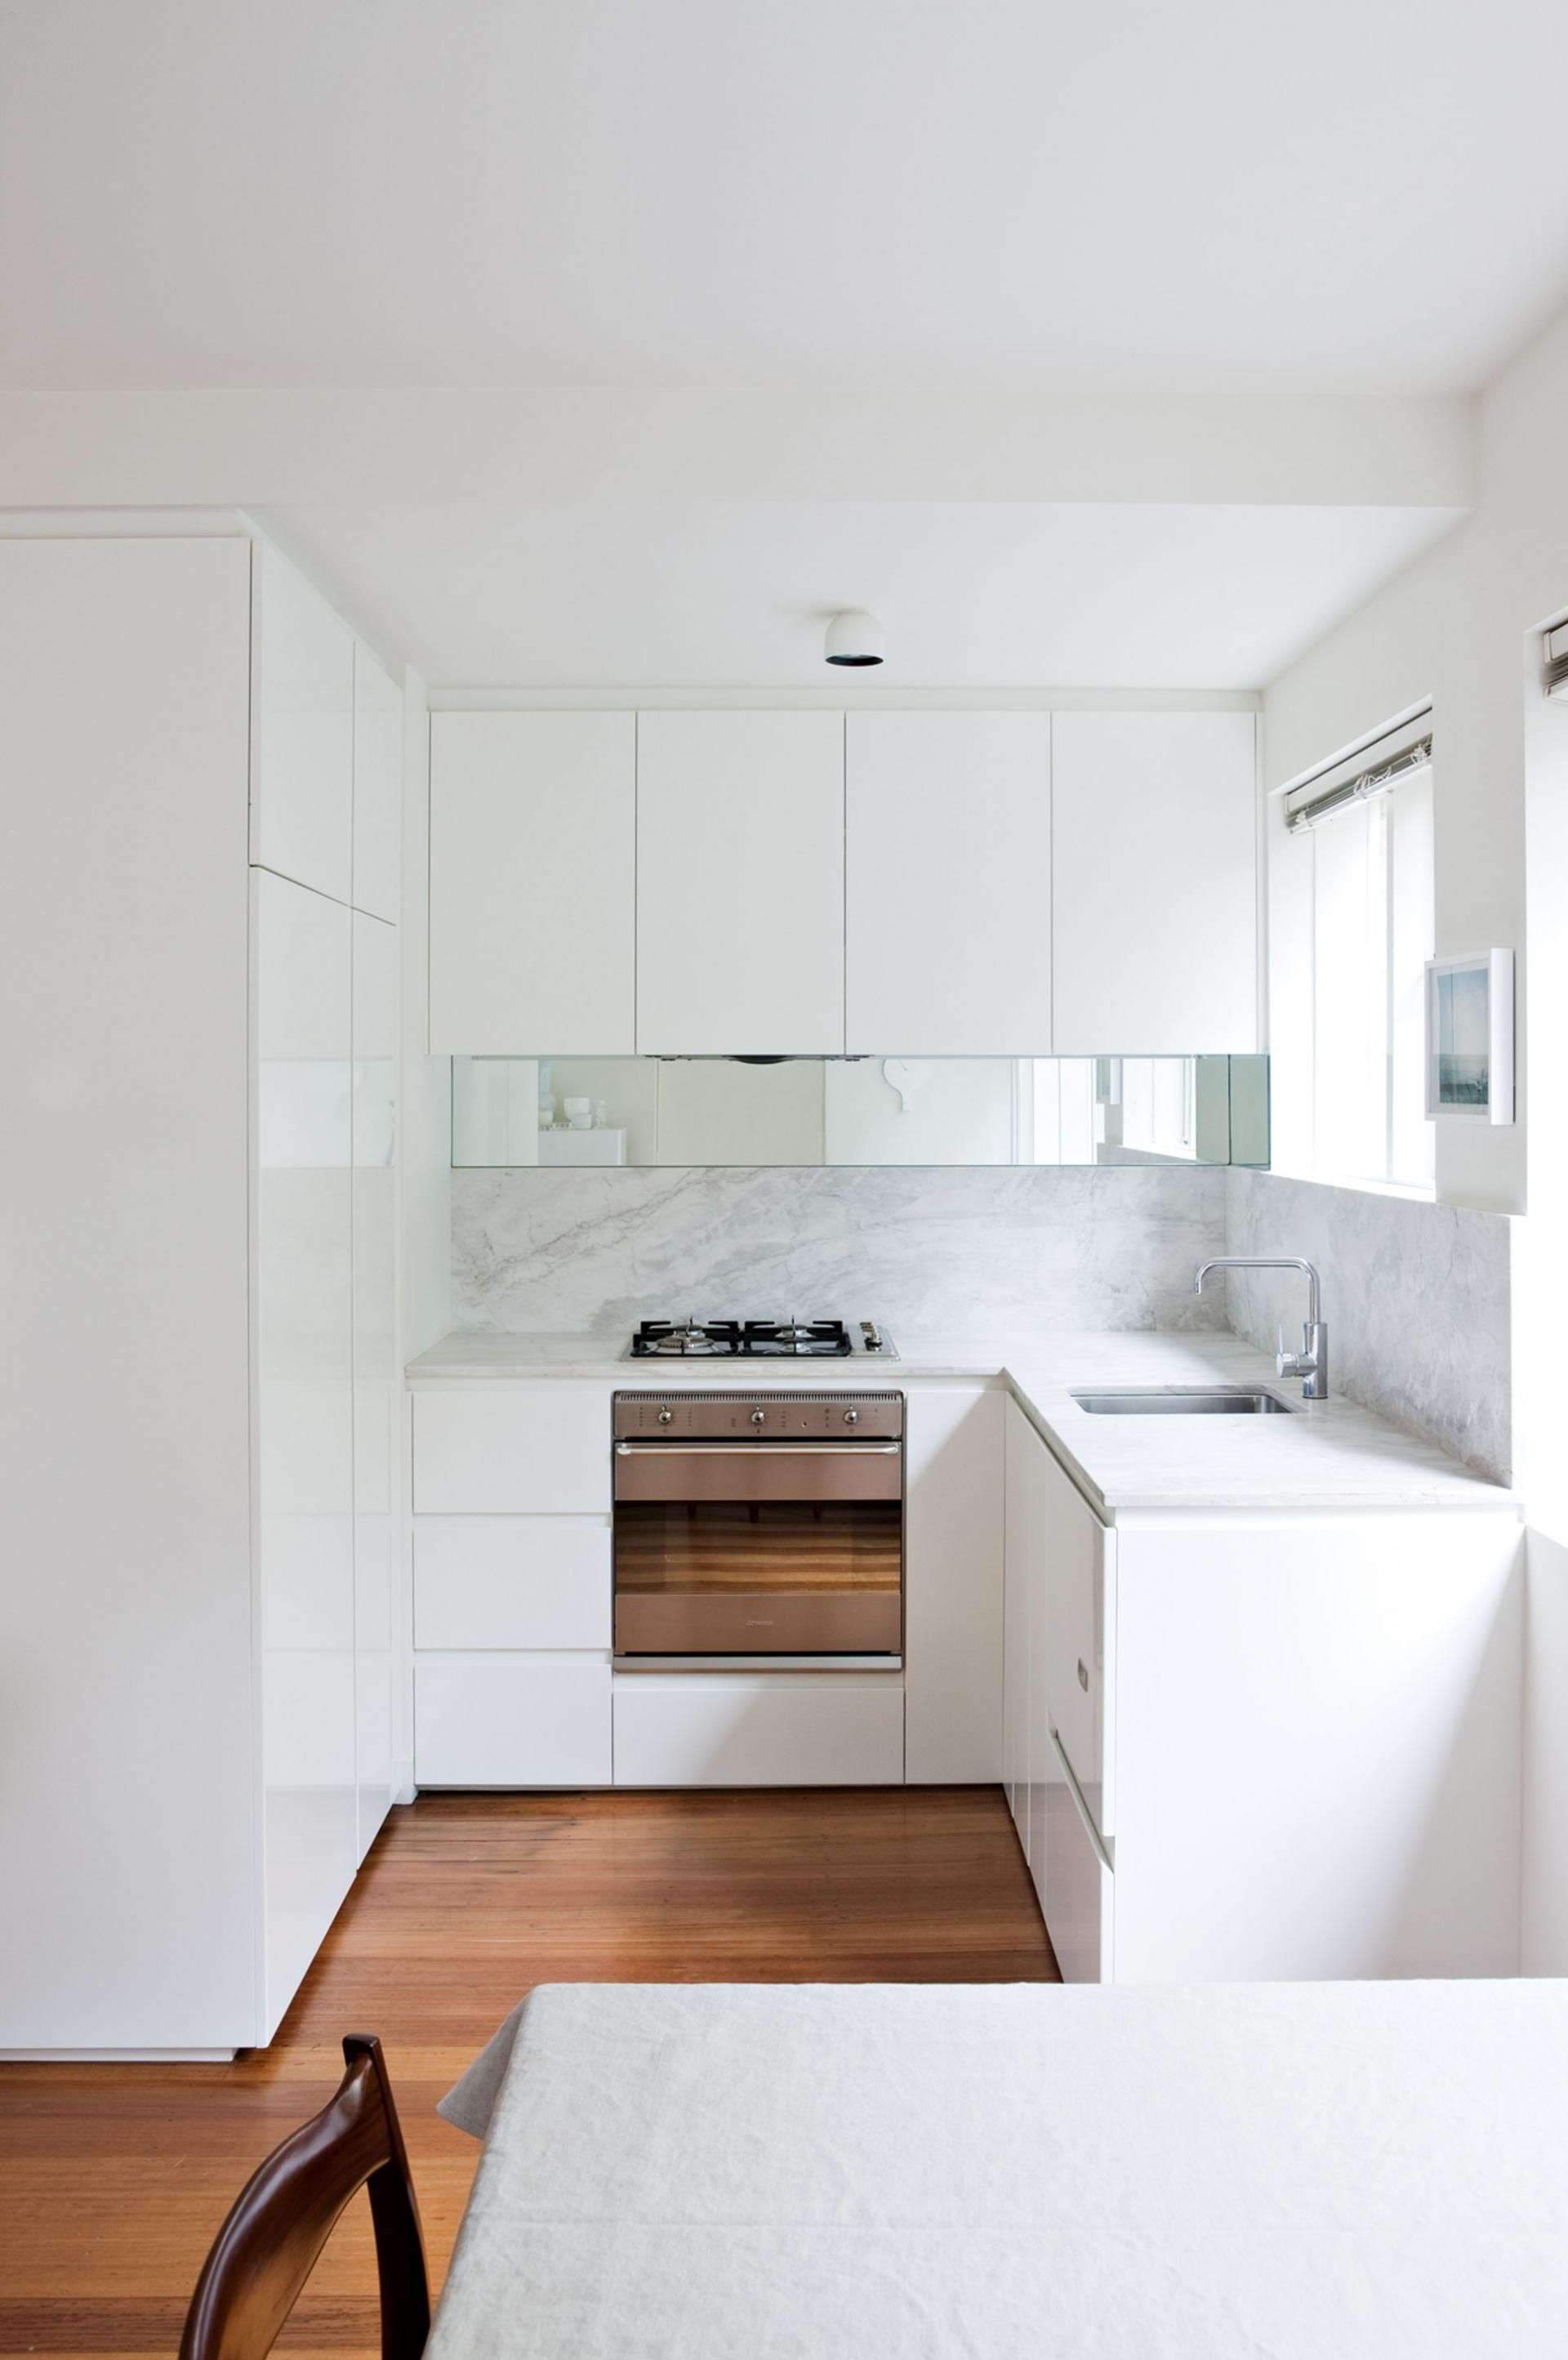 Delightful Small Kitchen Design Ideas. Photography By Jason Busch. Styling By Megan  Morton.